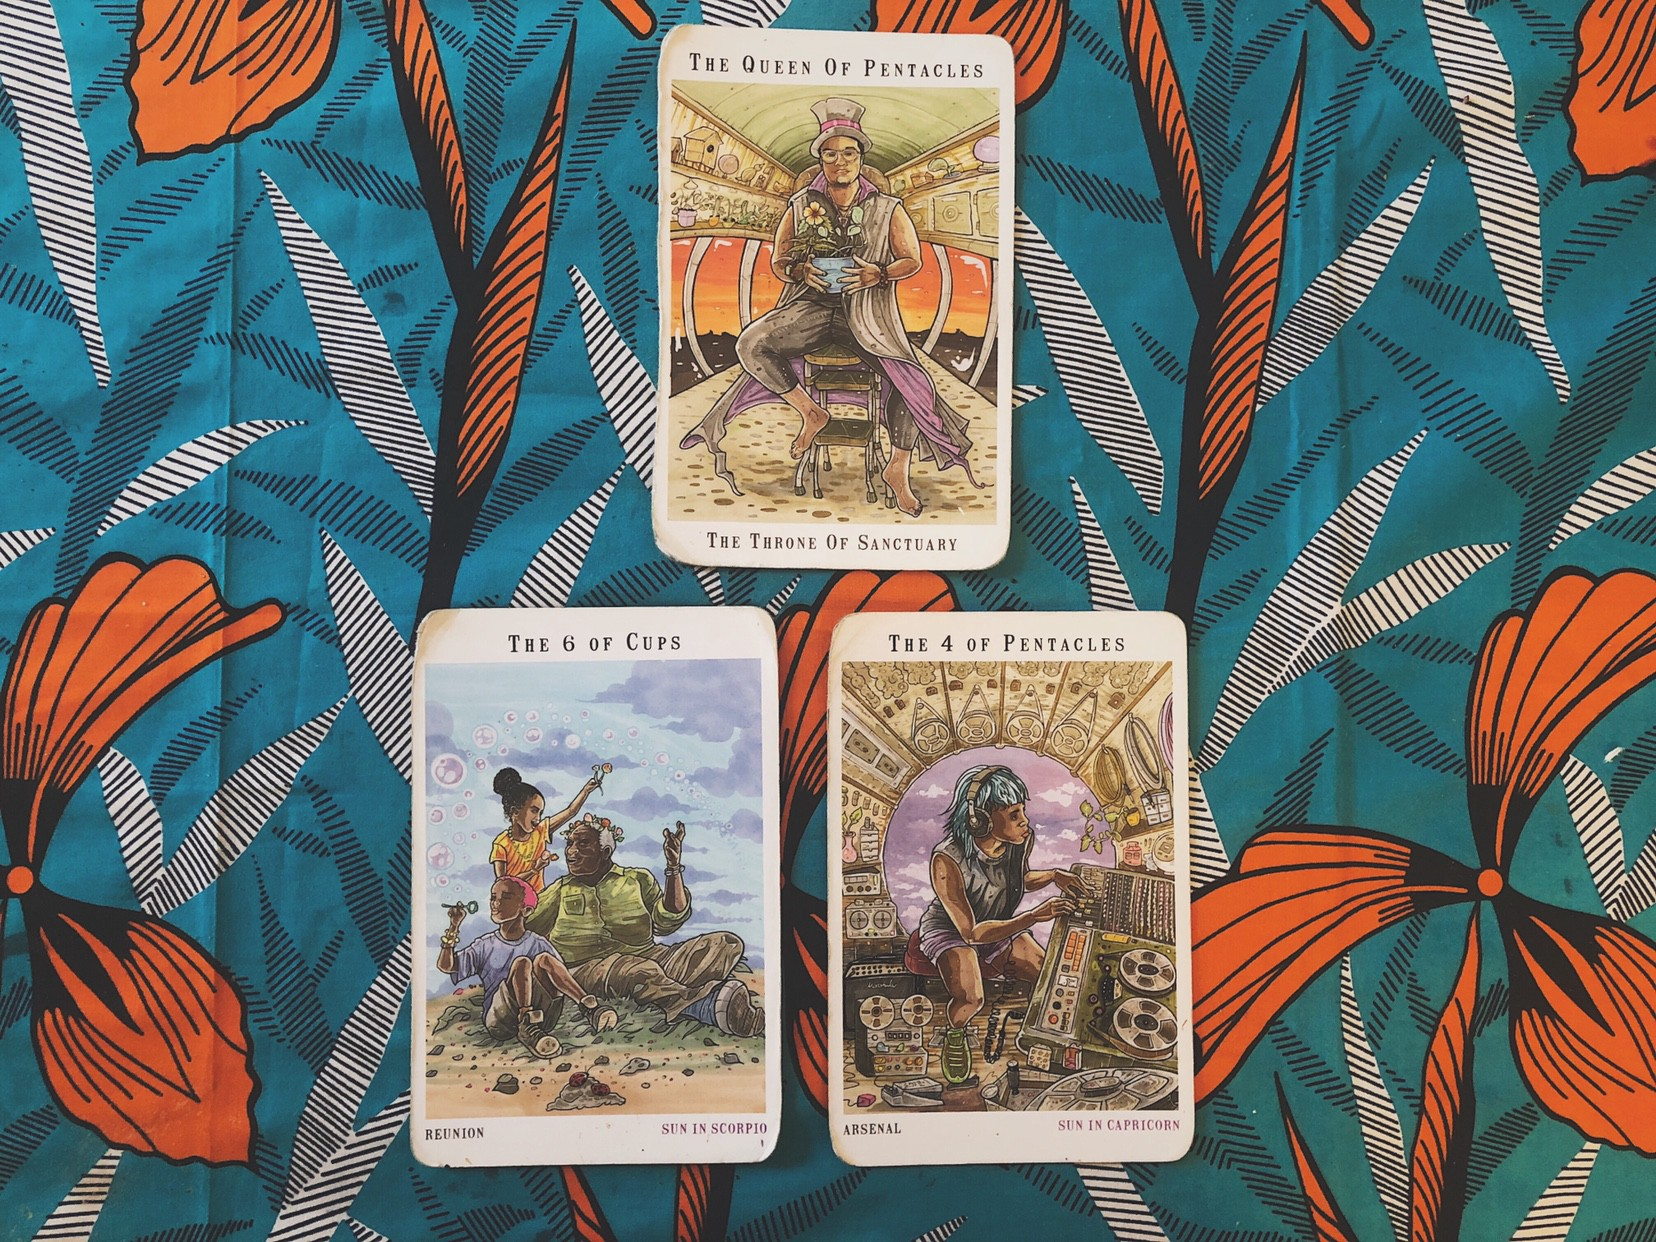 Tarotscopes For The New Moon In Libra By Dominique Matti Human Parts In a general context, the six of pentacles tarot card represents gifts, kindness and generosity. tarotscopes for the new moon in libra